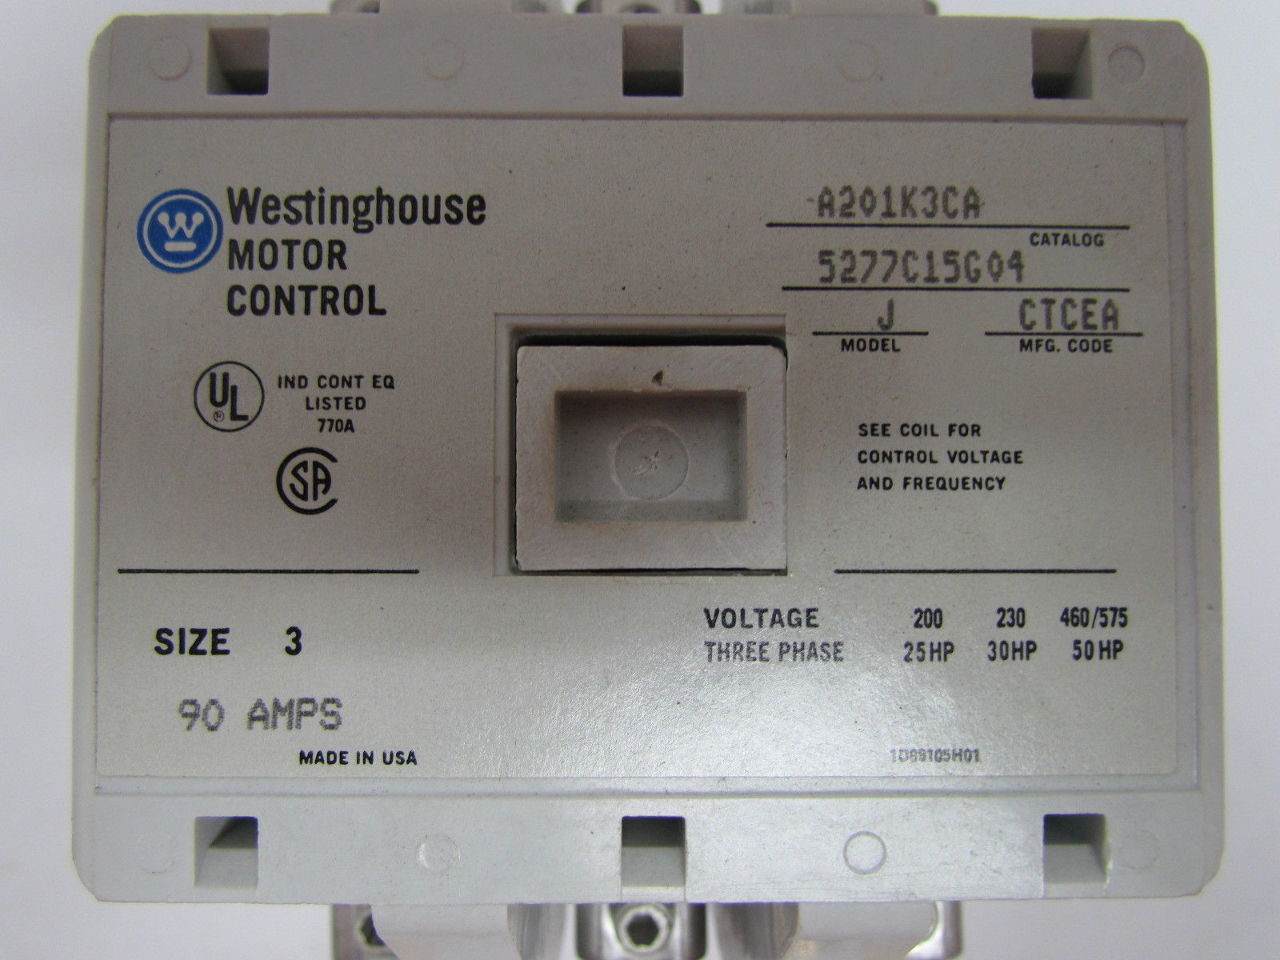 Westinghouse A201k3ca Magnetic Contactor Motor Control